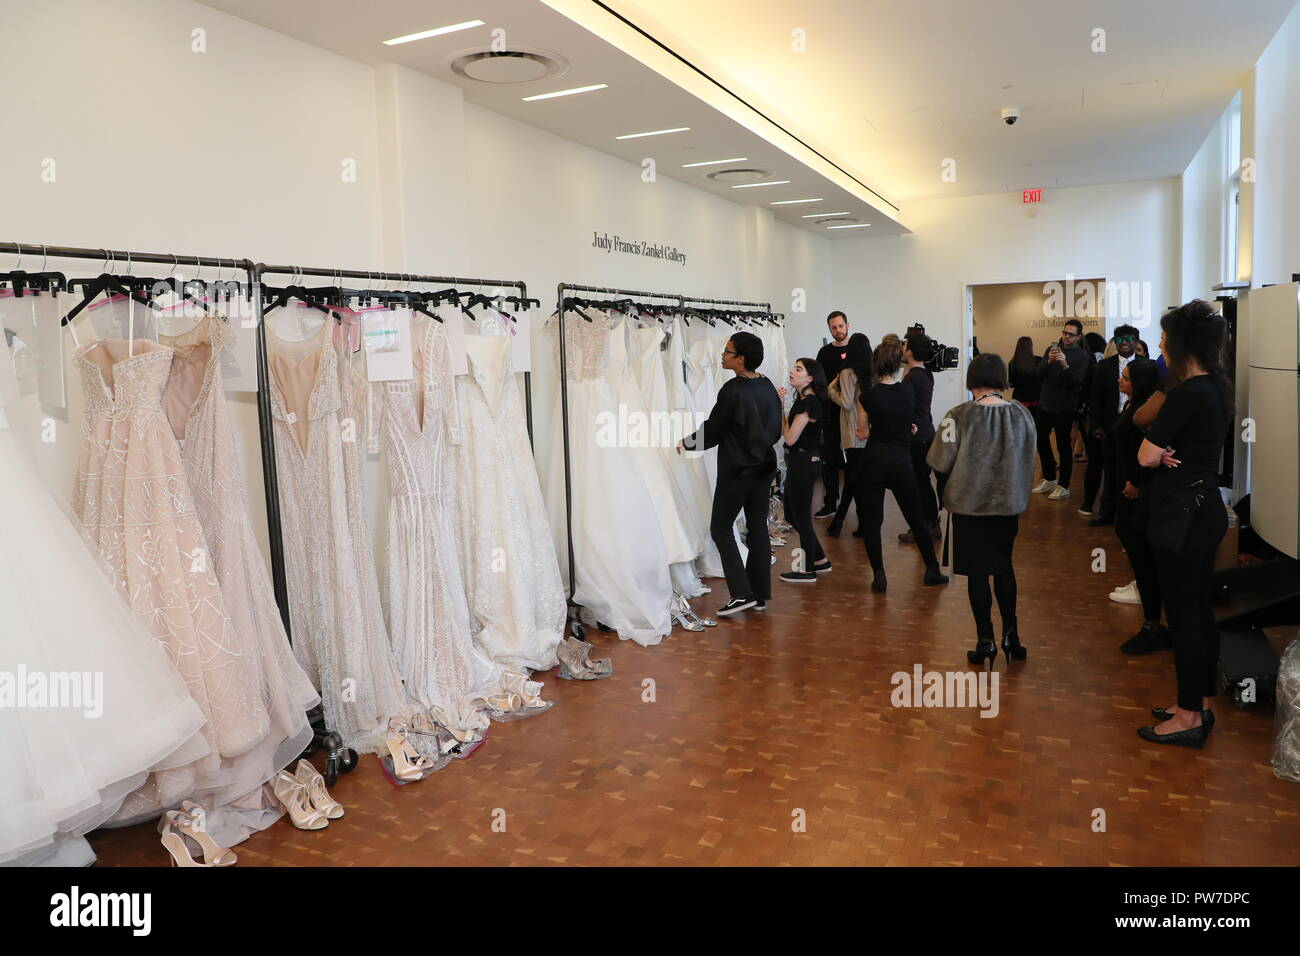 7ba61a41f0ac NEW YORK, NY - APRIL 13: General atmosphere backstage before the Justin  Alexander Spring 2019 Bridal Fashion show on April 13, 2018 in New York  City.